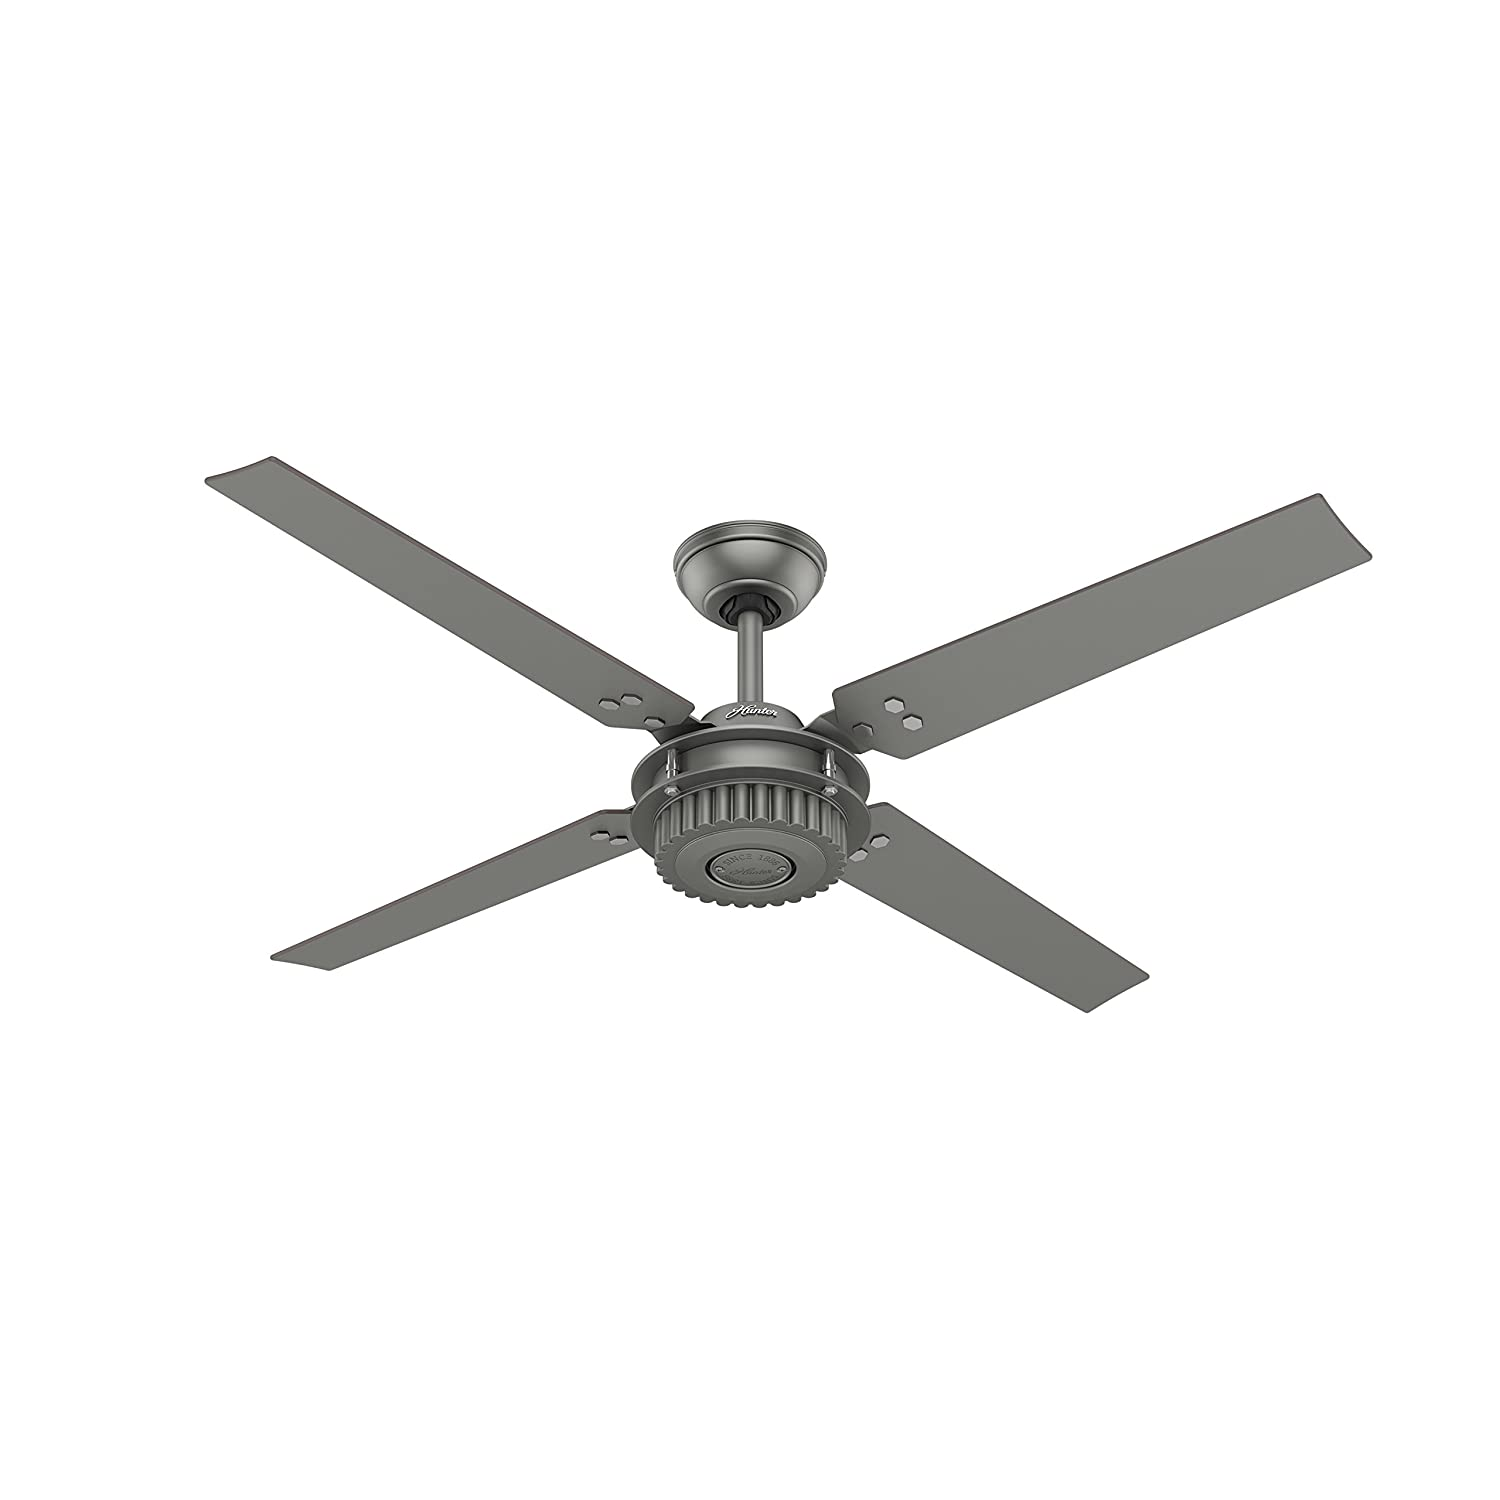 Hunter Fan 54 in. Outdoor Ceiling Fan in Matte Silver with Wall Controller Certified Refurbished